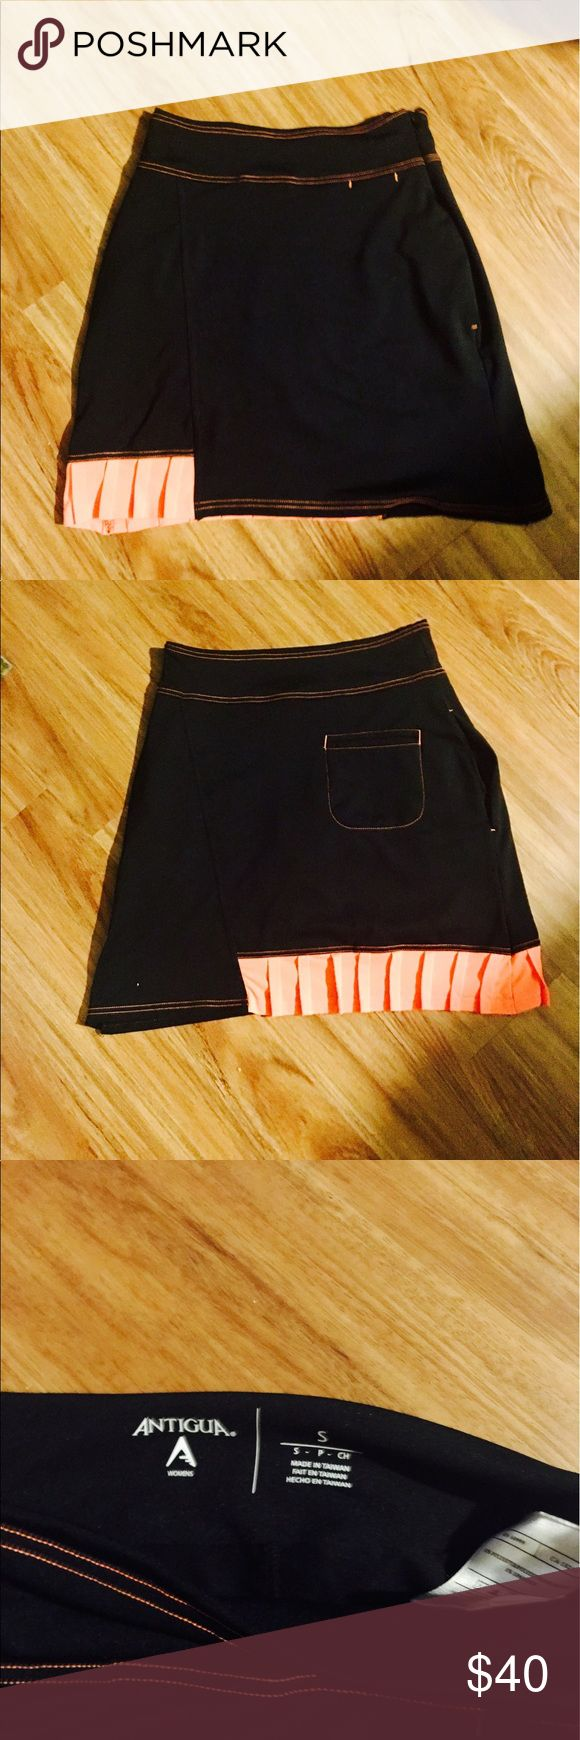 """NWOT ANTIGUA Tennis Skirt I have two of these fashionable tennis skirts - size Small. They are both brand new without tag. -------   Black w bright coral color! So pretty!! They also have pockets-                                                               I think they are also cute to for golfing or as a bikini """"cover-up""""I am selling them separately but pls let me know if you would like them both. Feel free to ask any questions :) 🎾 👙🏌️♀️ Antigua Skirts"""